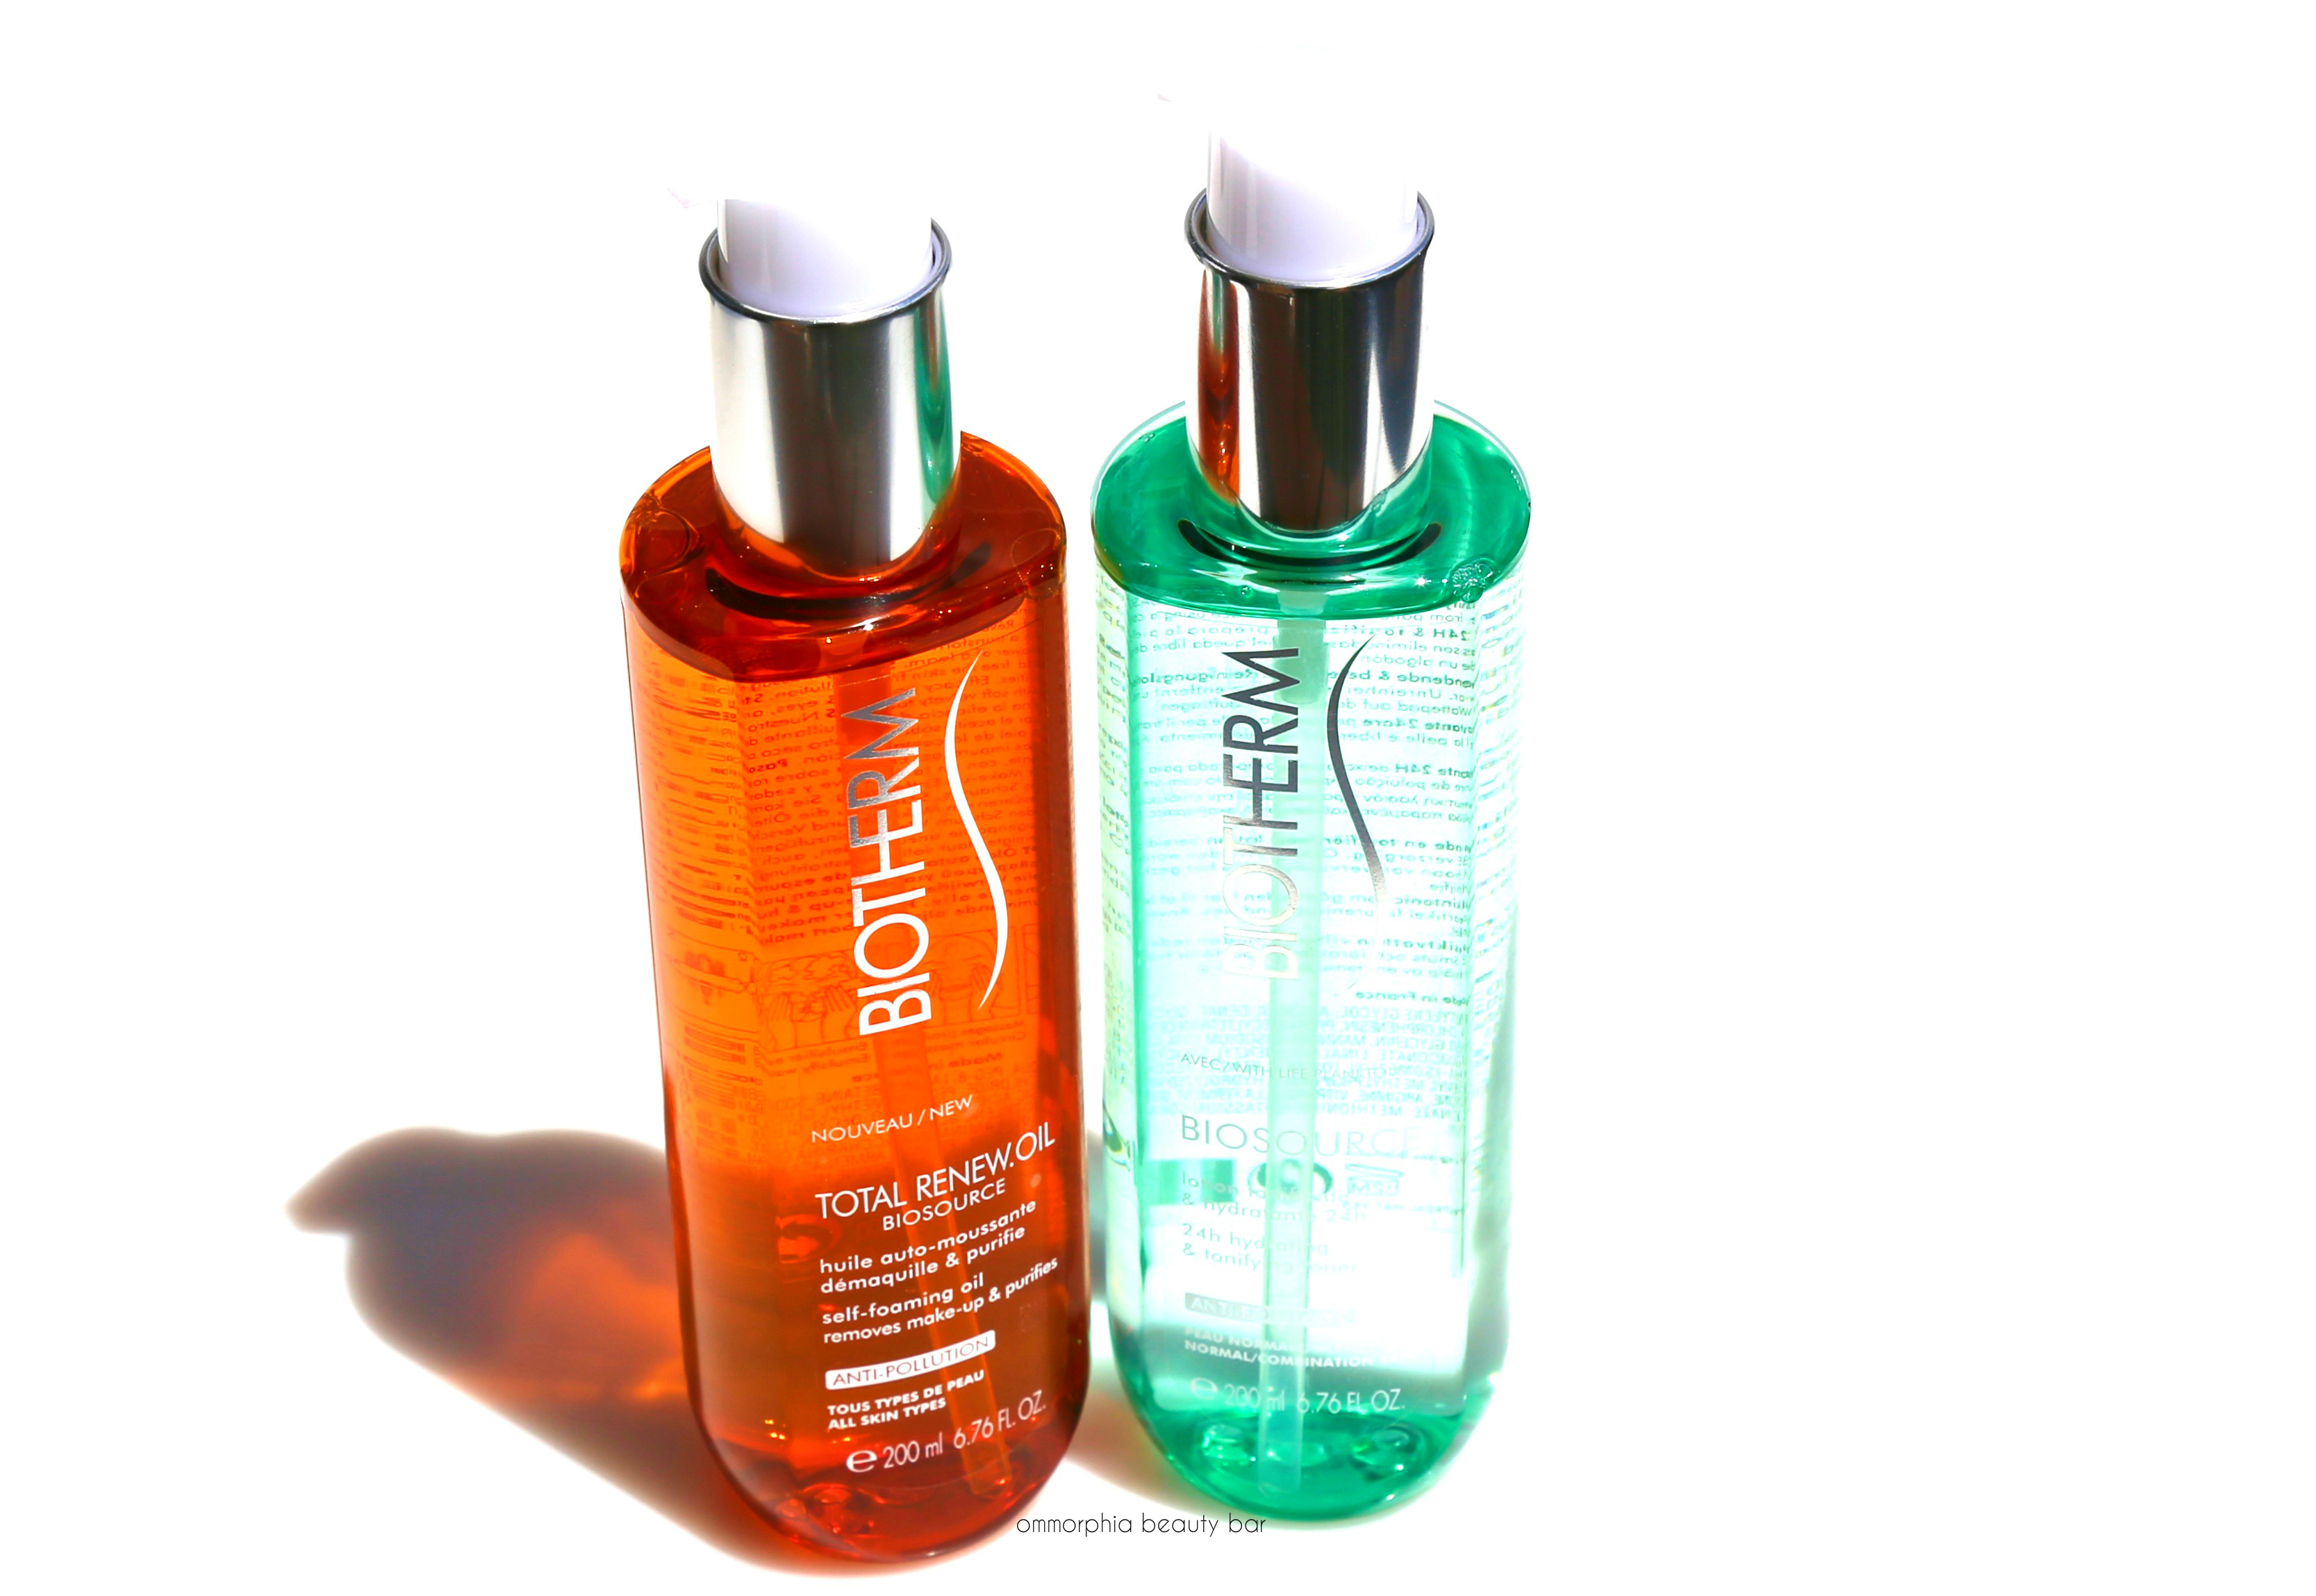 biotherm cleansing oil